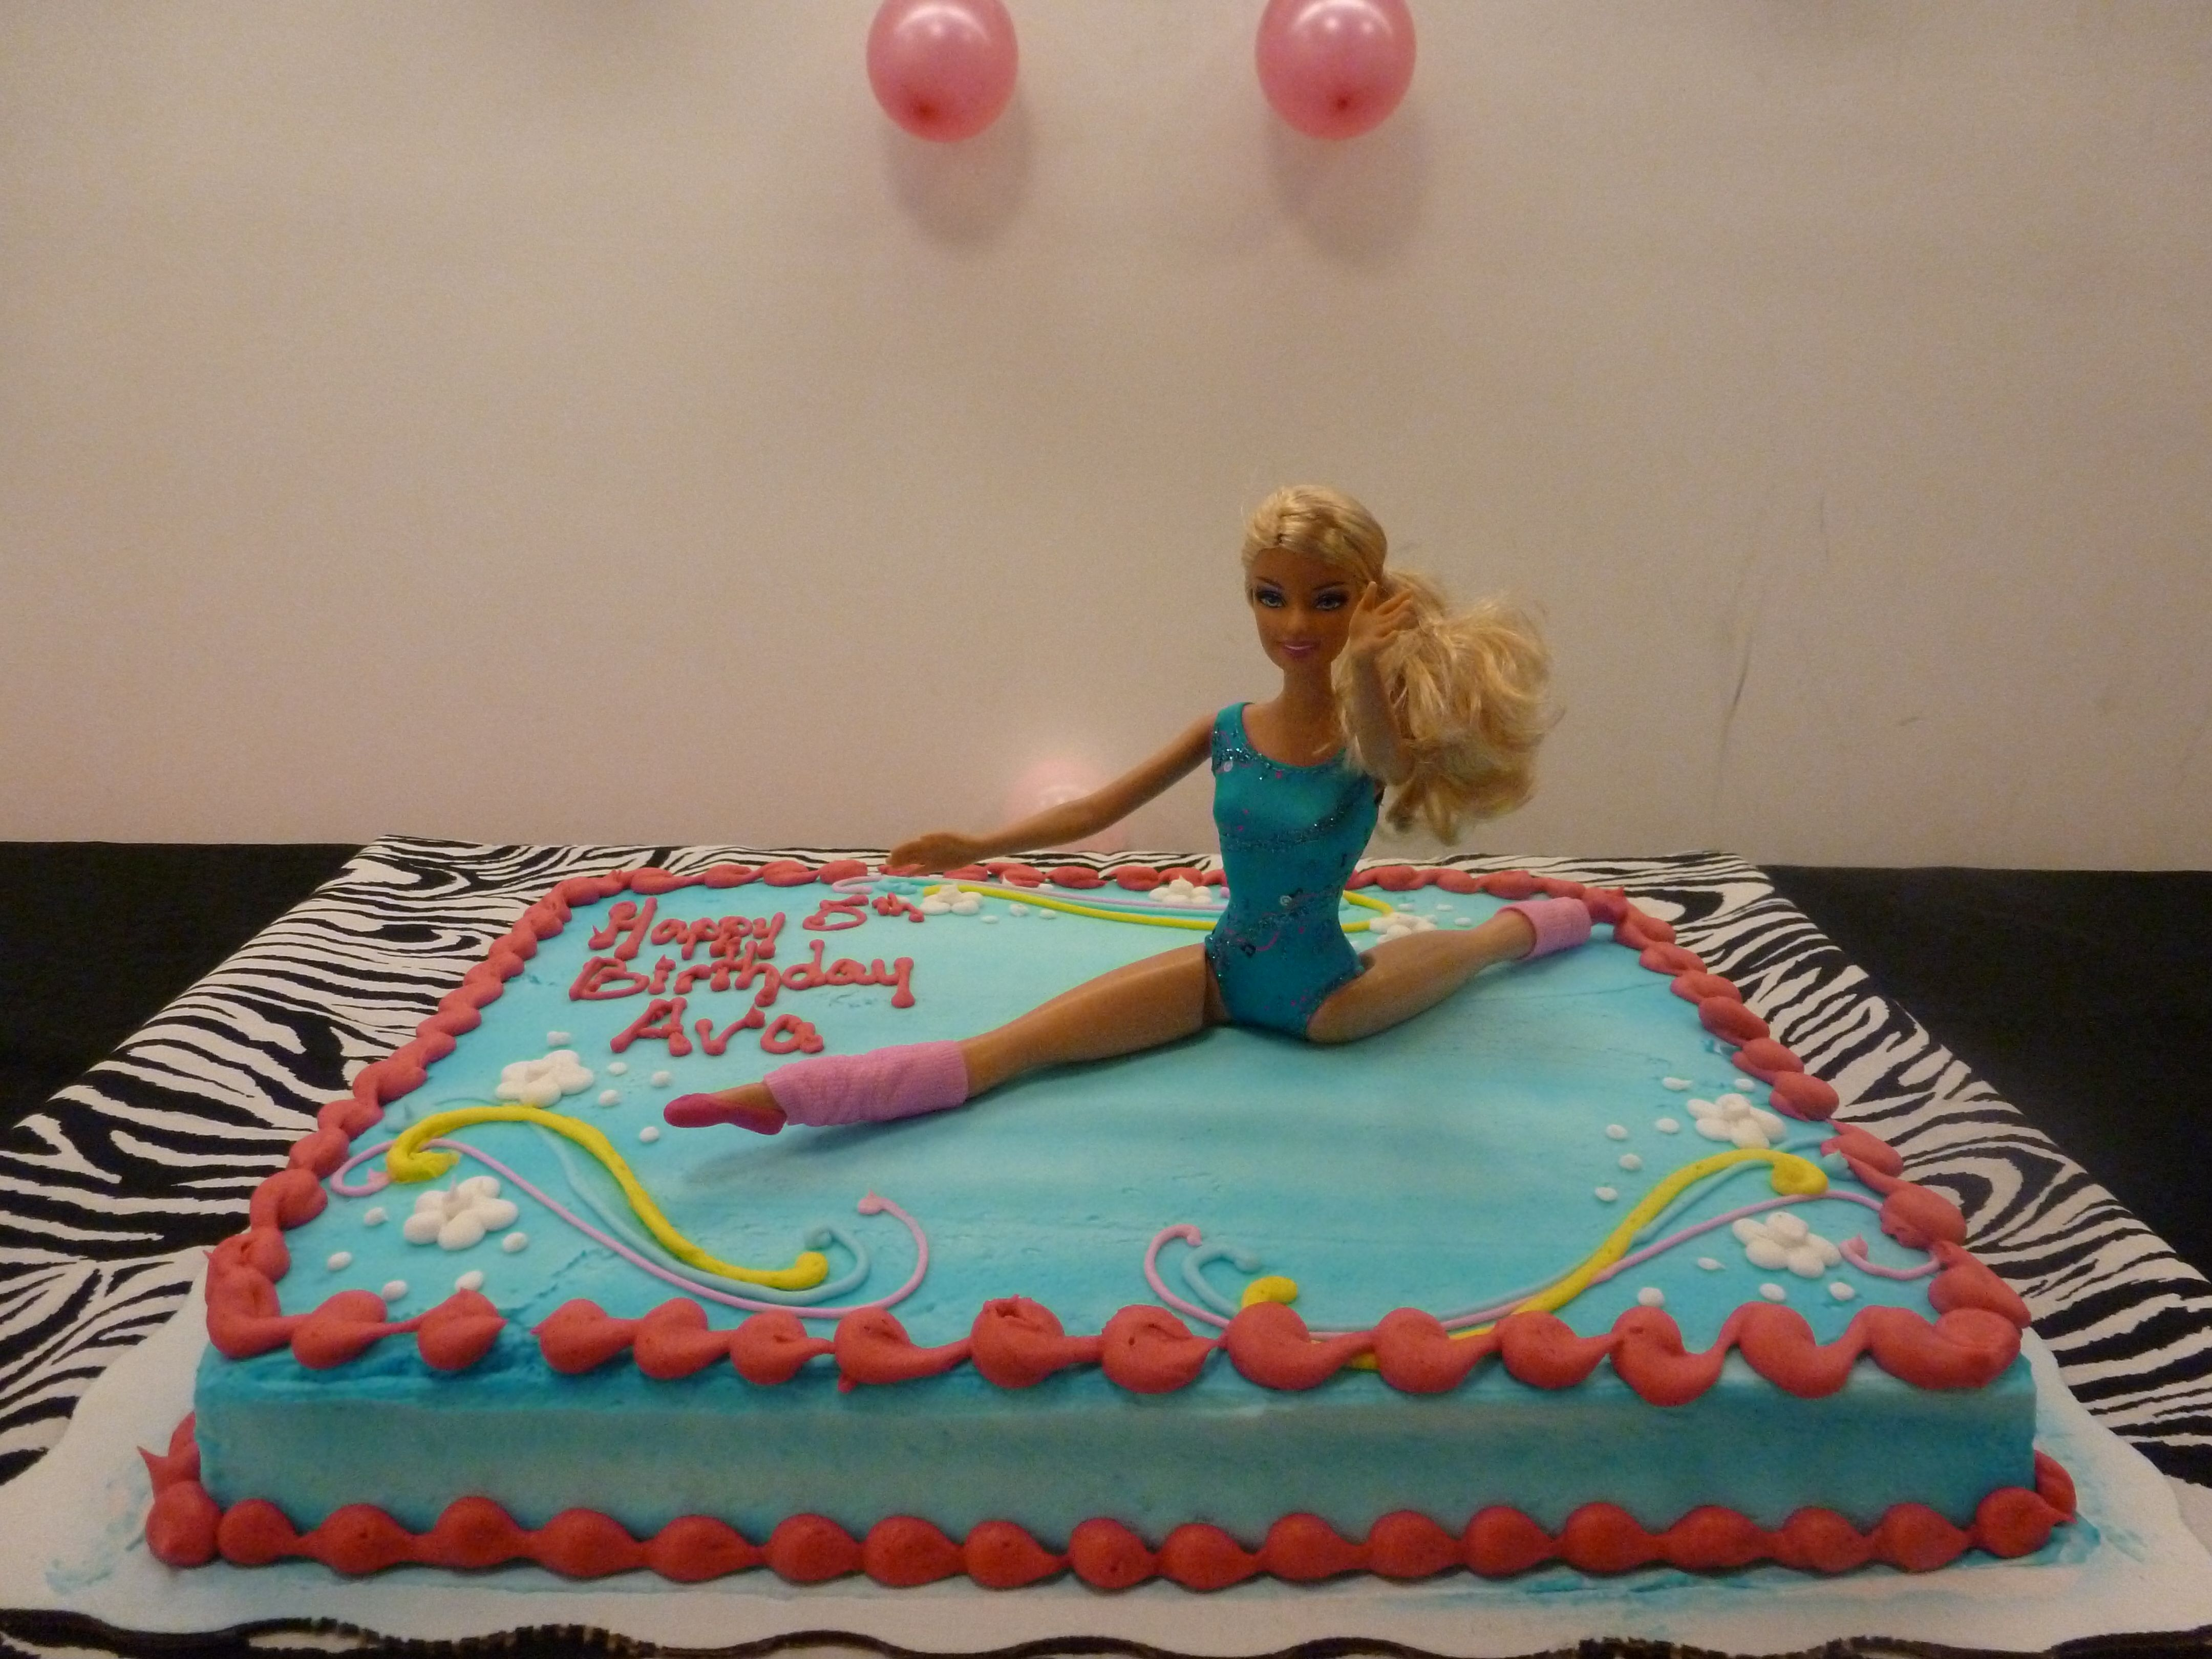 Miraculous We Couldnt Find A Gymnastics Cake So We Bought A Cake At Walmart Personalised Birthday Cards Paralily Jamesorg